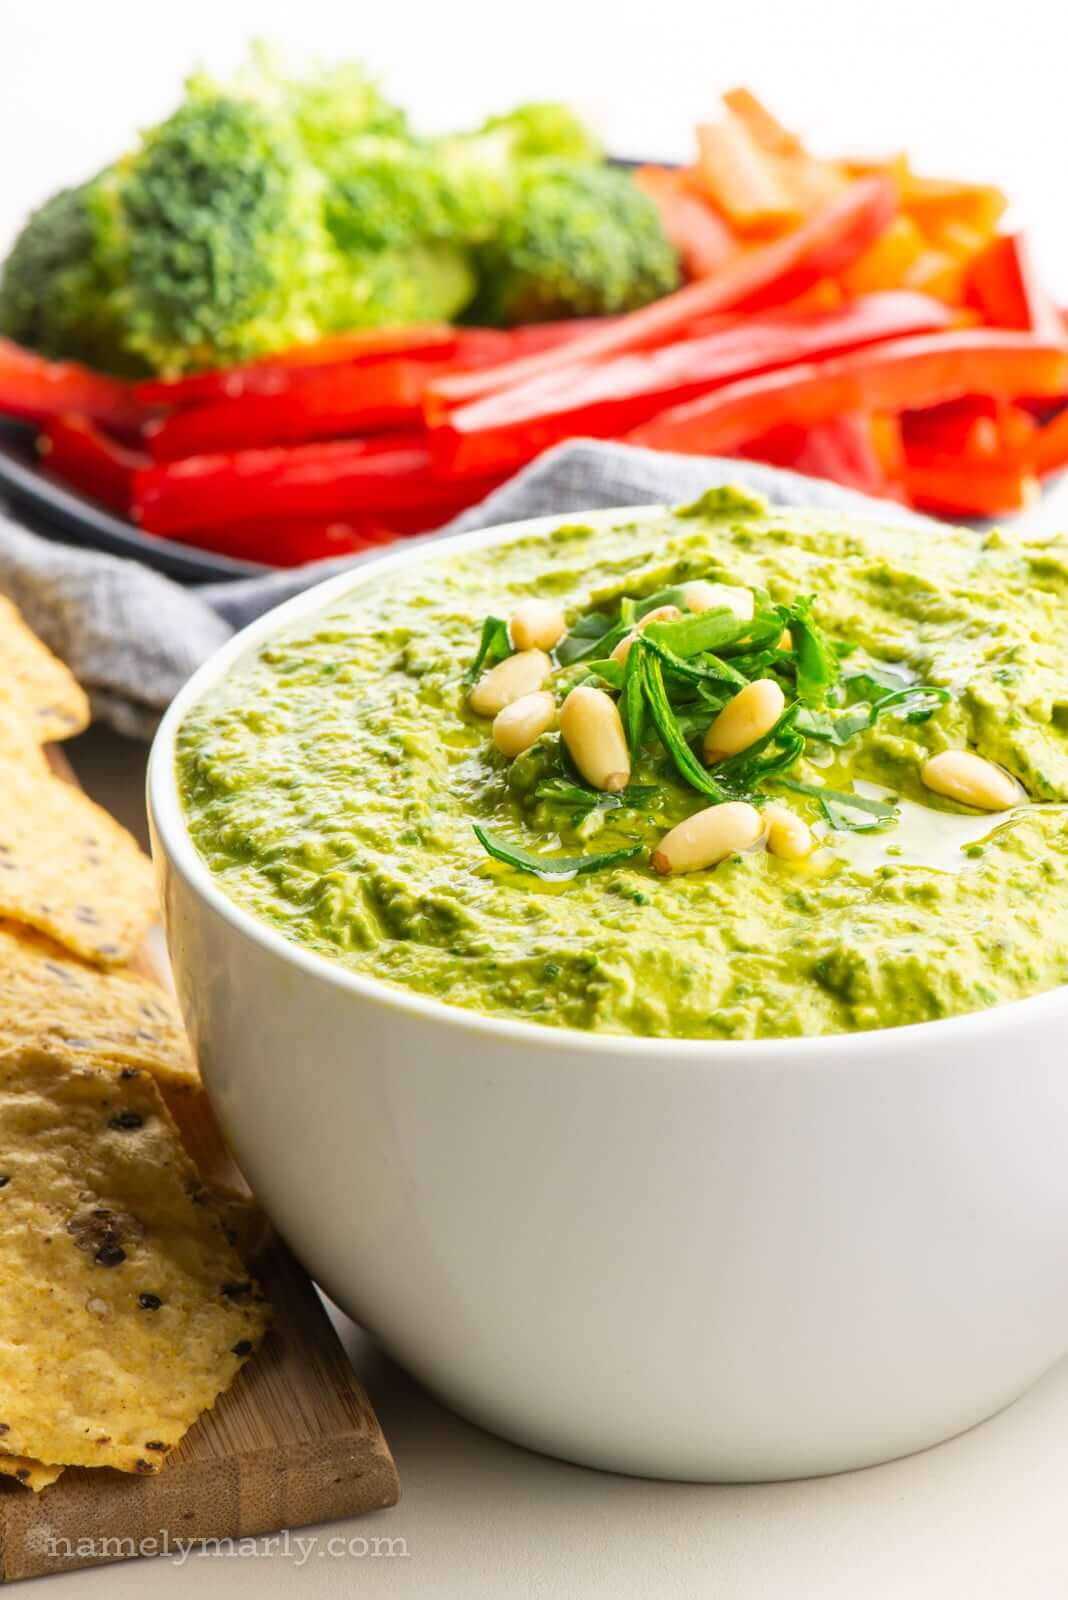 Give Your Vegan Hummus a Kick With Power Greens